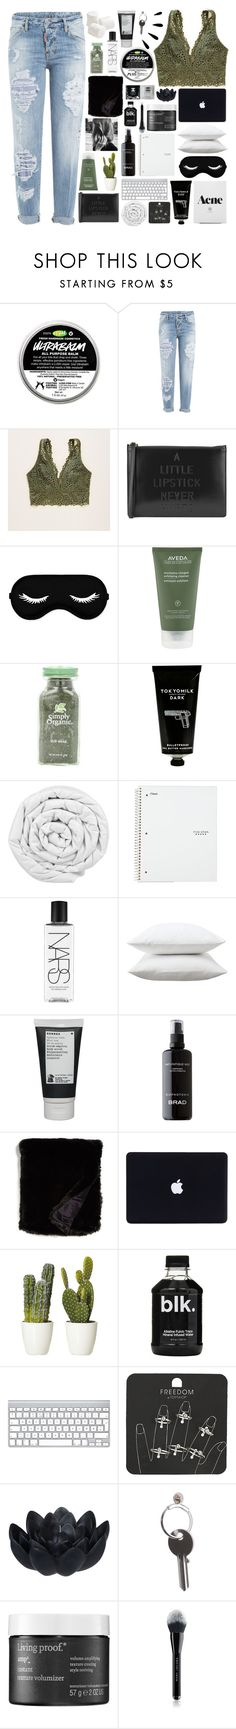 """""""whisper sweet nothings in my ear"""" by awakened-paradise ❤ liked on Polyvore featuring Dsquared2, Aerie, Lulu Guinness, Aveda, TokyoMilk, Brinkhaus, NARS Cosmetics, Fieldcrest, Korres and BRAD Biophotonic Skin Care"""